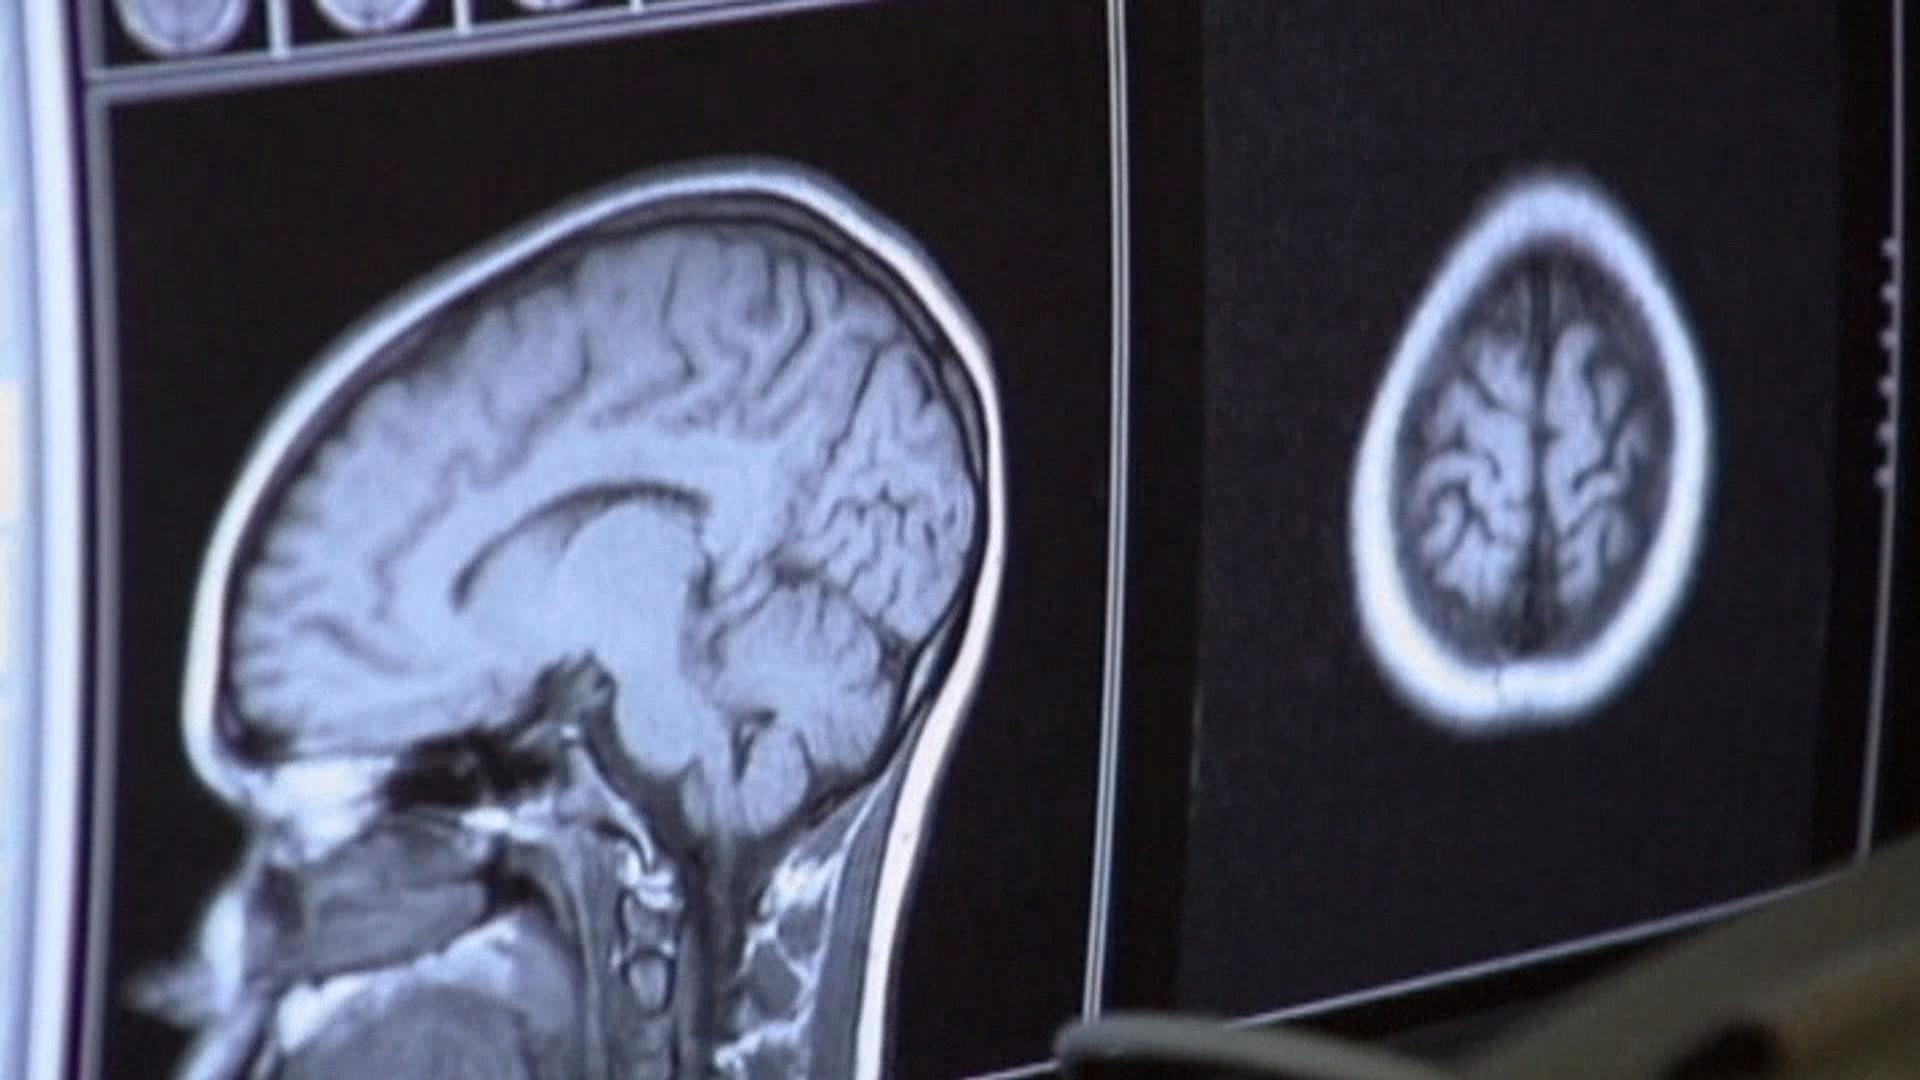 Life after death? Study finds brain still works after body dies